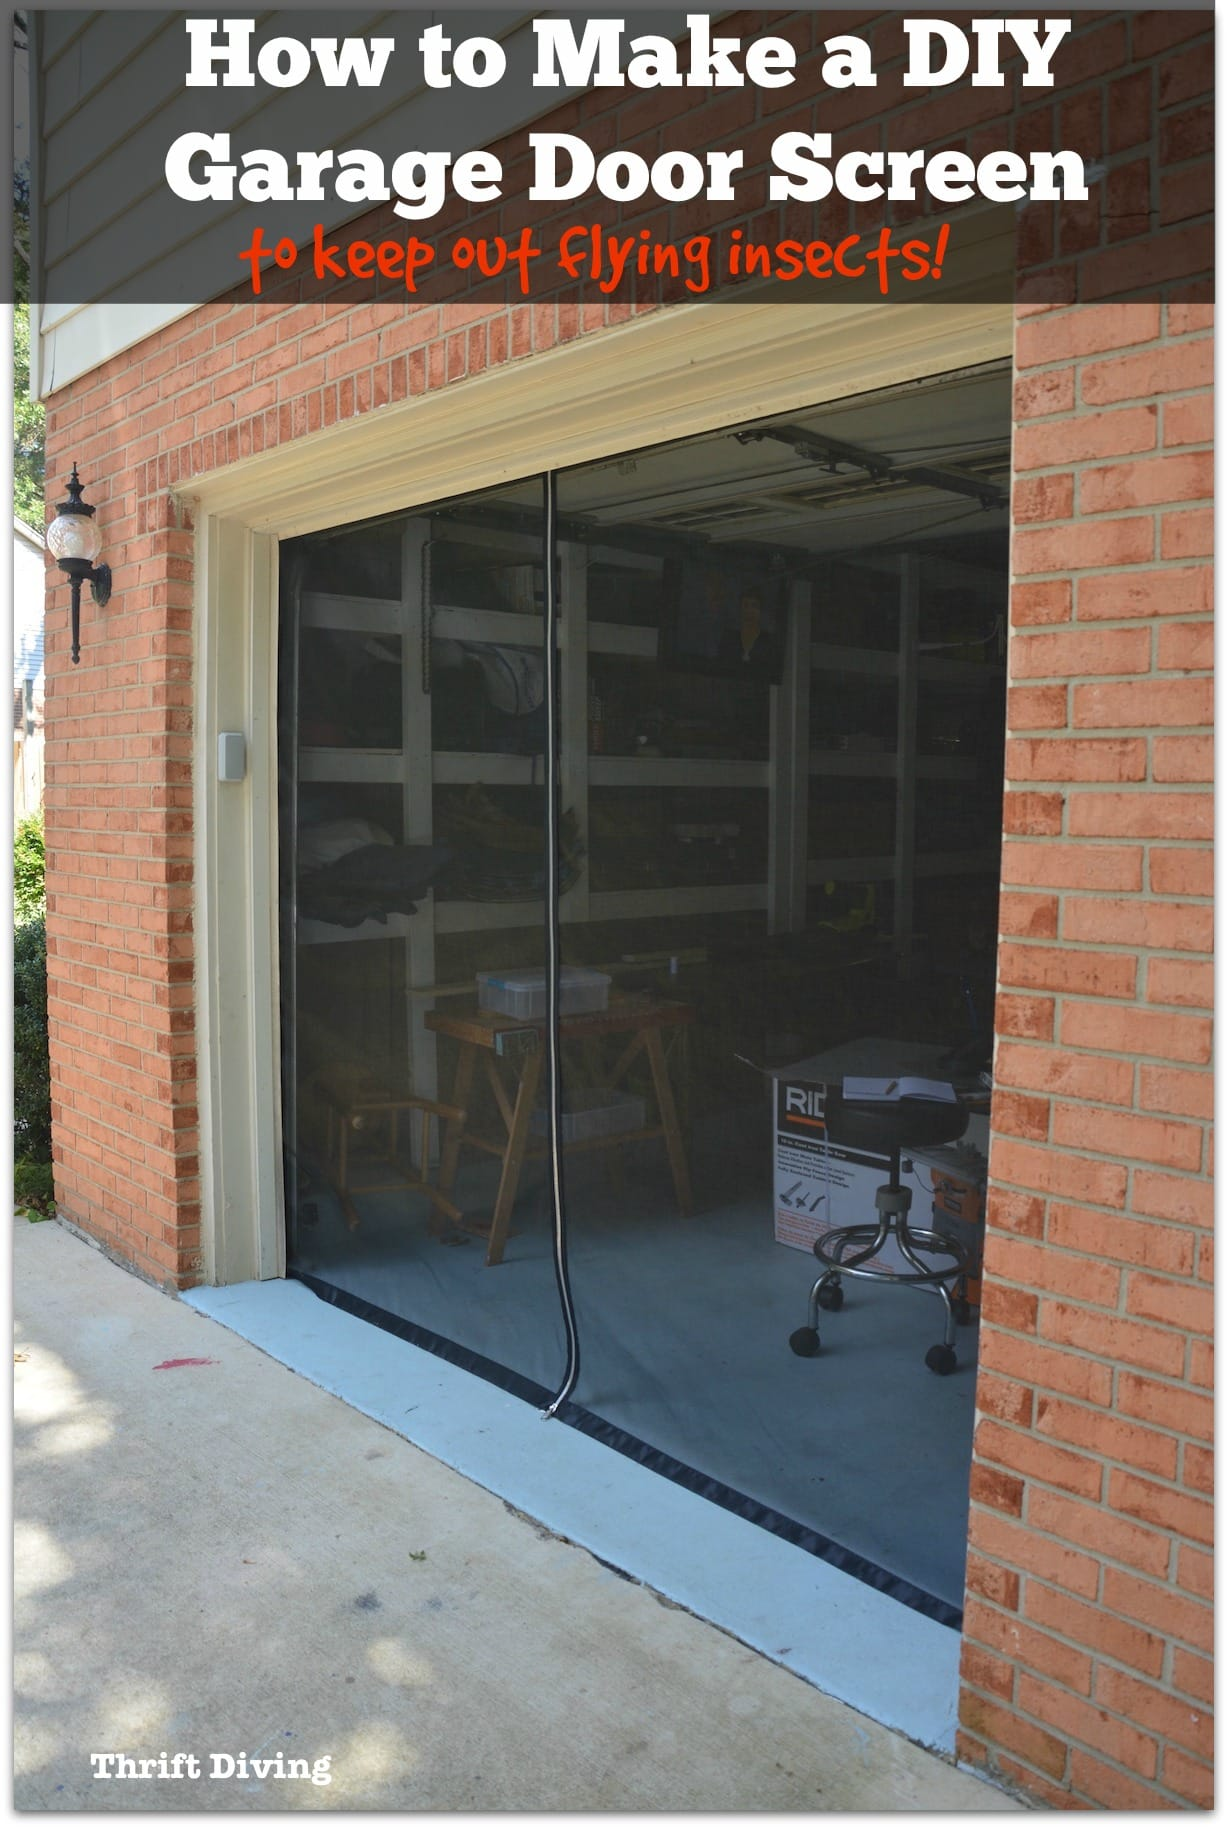 How to Make Your Own Garage Door Screen With a Zipper